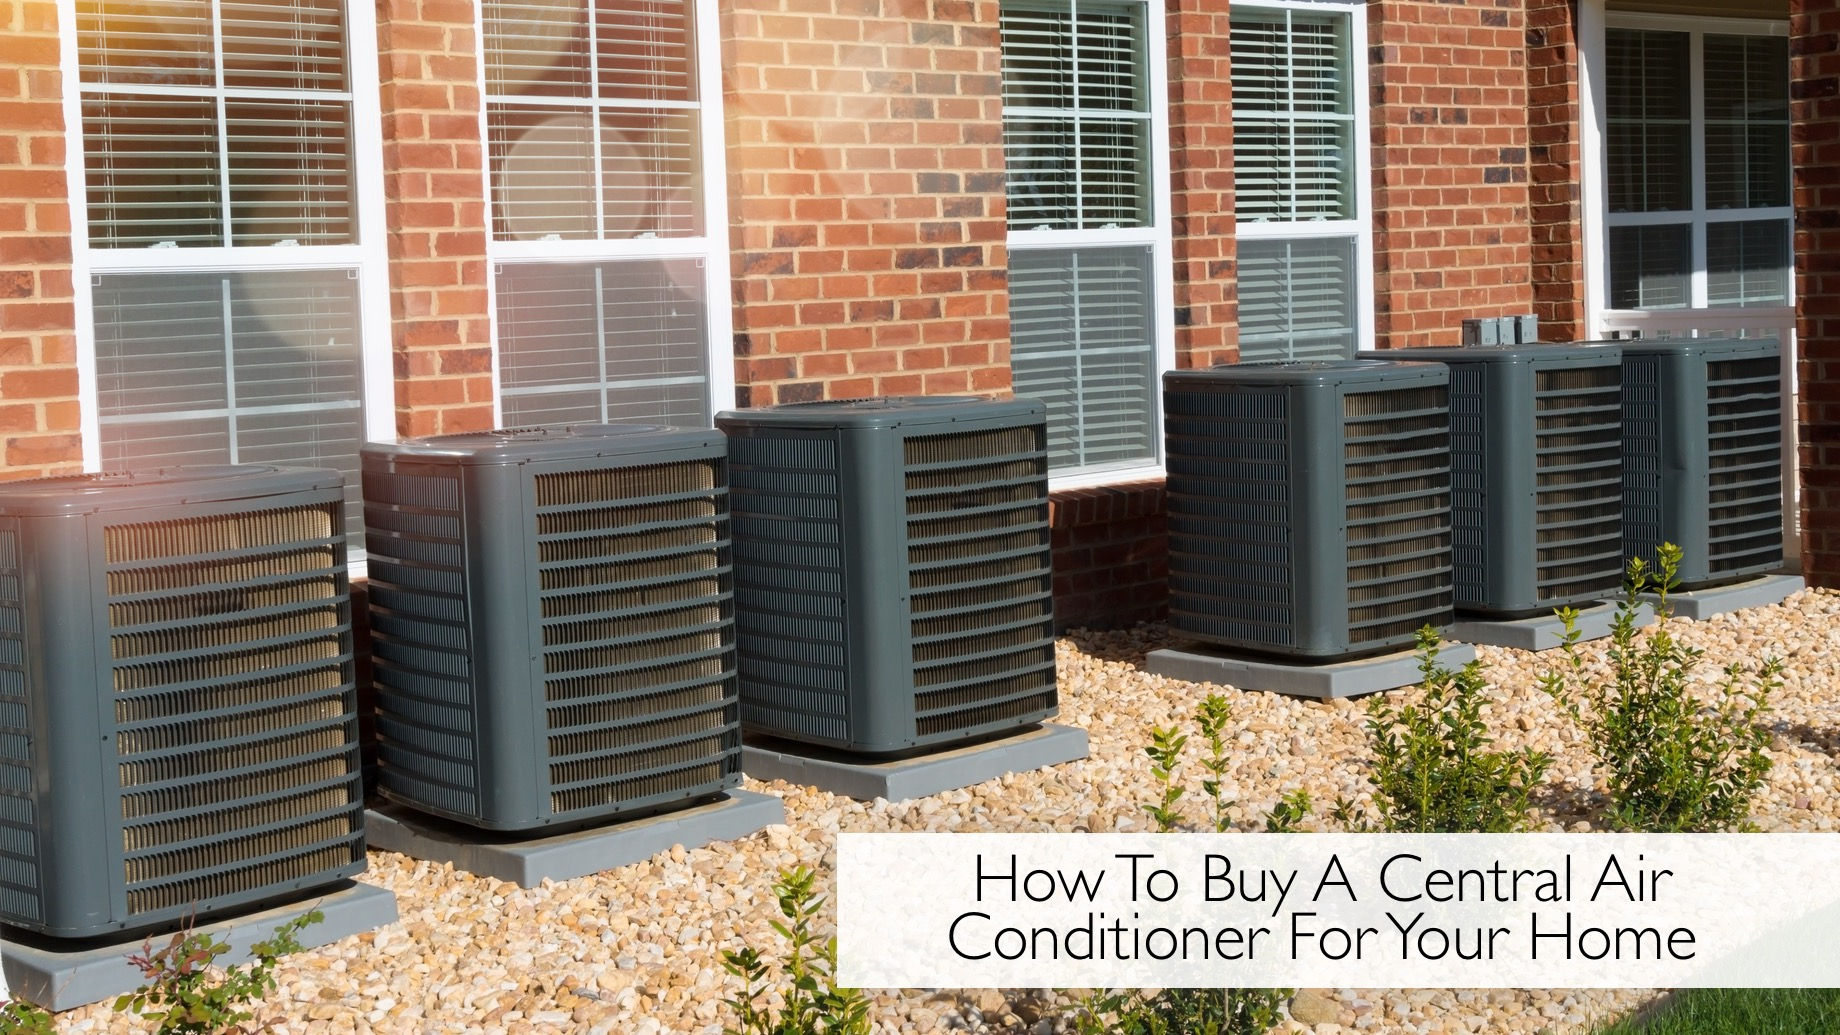 How To Buy A Central Air Conditioner For Your Home